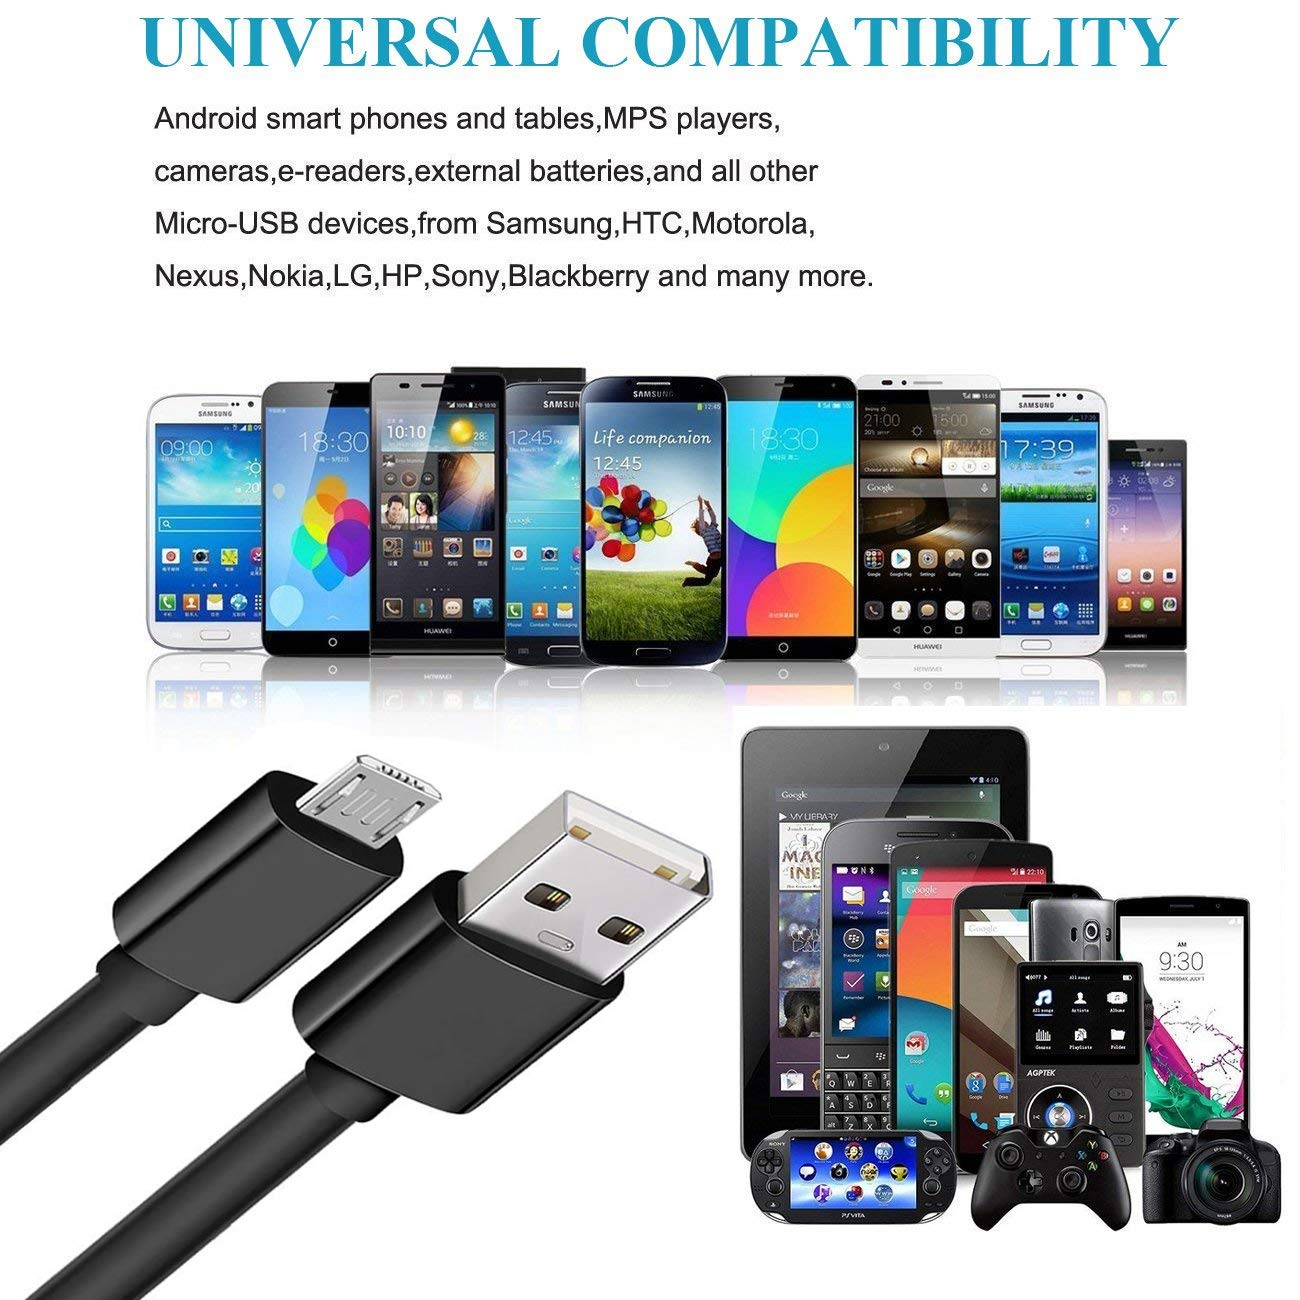 Micro USB Cord for Samsung Galaxy S7 S6 Edge LG Phone Hoiwang Long Android Charger Cable Fast Charge Micro USB Cable 2.0 10FT 2 Pack Quick Charging Charging Cable for Kindle Fire,Tablet,PS4,HTC